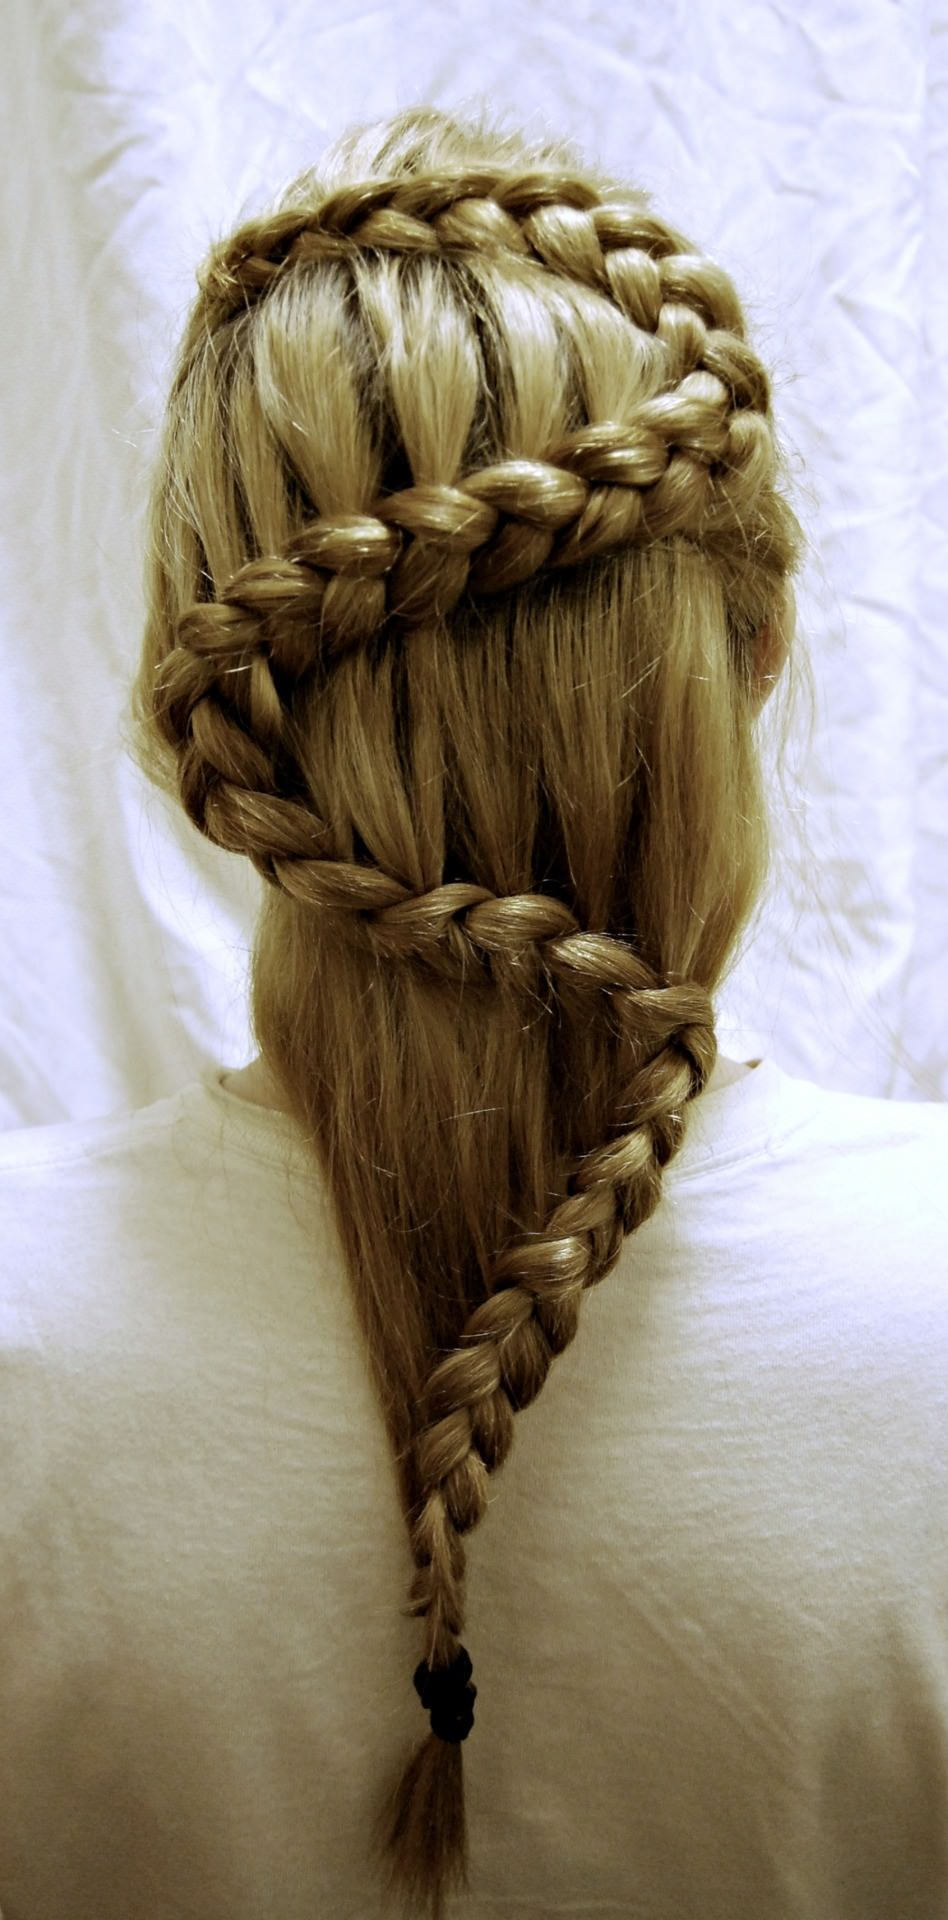 24 Long Braids Haircut Ideas Designs Hairstyles